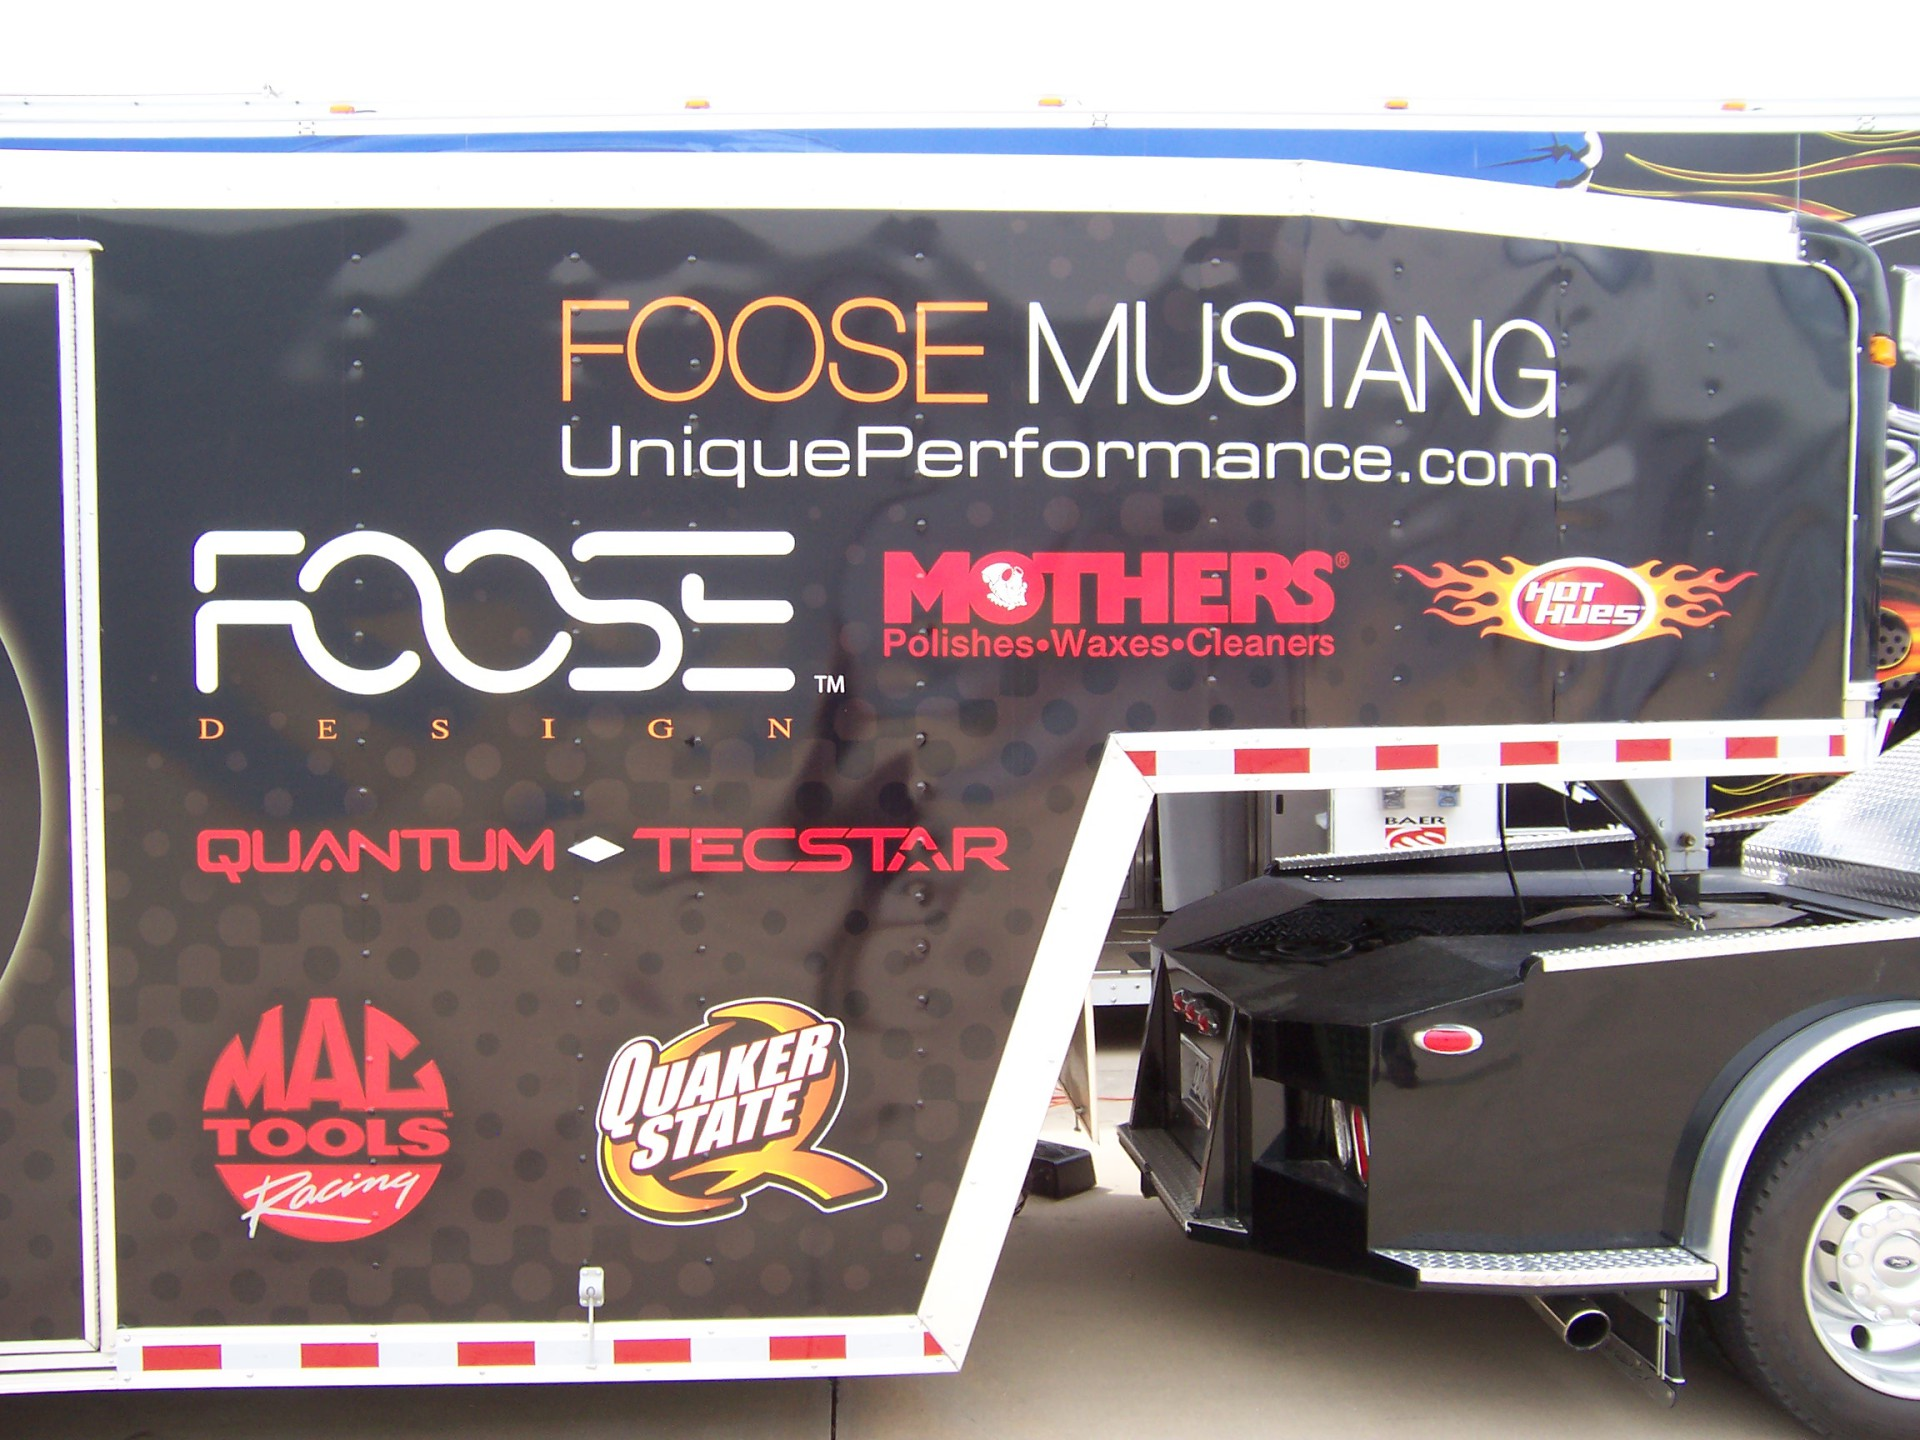 trailer wrap, Foose trailer wrap, dfw trailer wraps, metroplex trailer wraps, trailer graphics